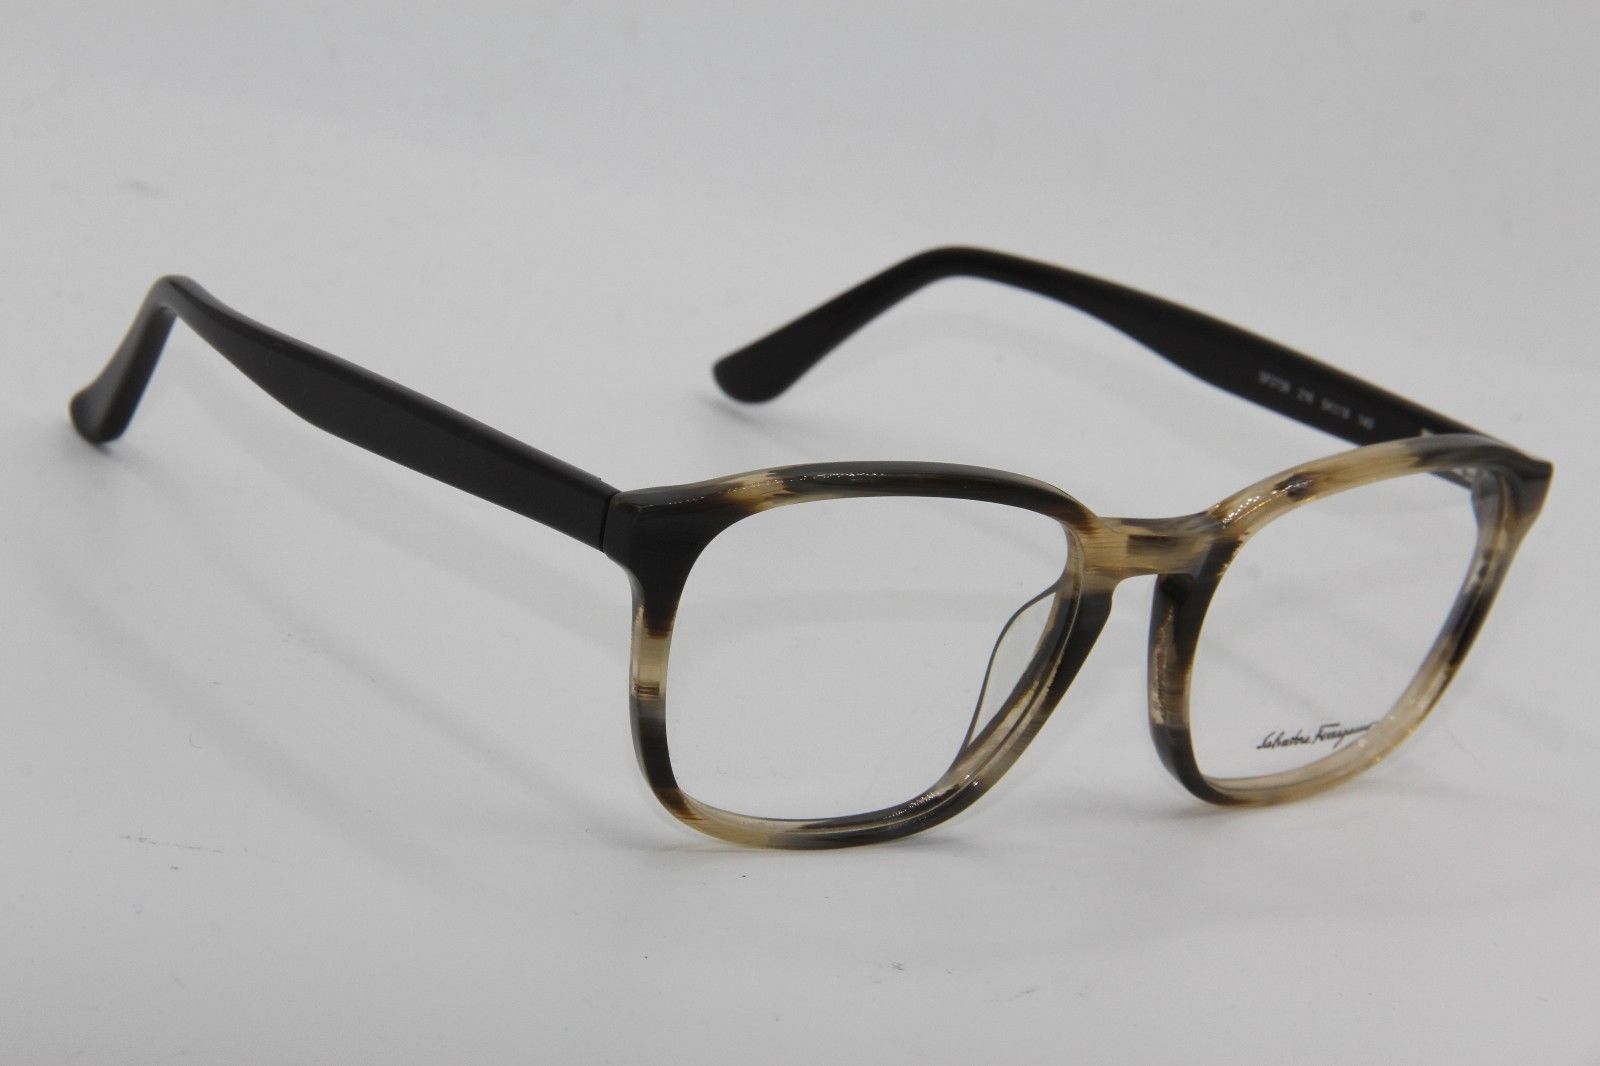 557c69f4d9 NEW SALVATORE FERRAGAMO SF 2739 216 HAVANA EYEGLASSES AUTHENTIC RX SF2739  54-18